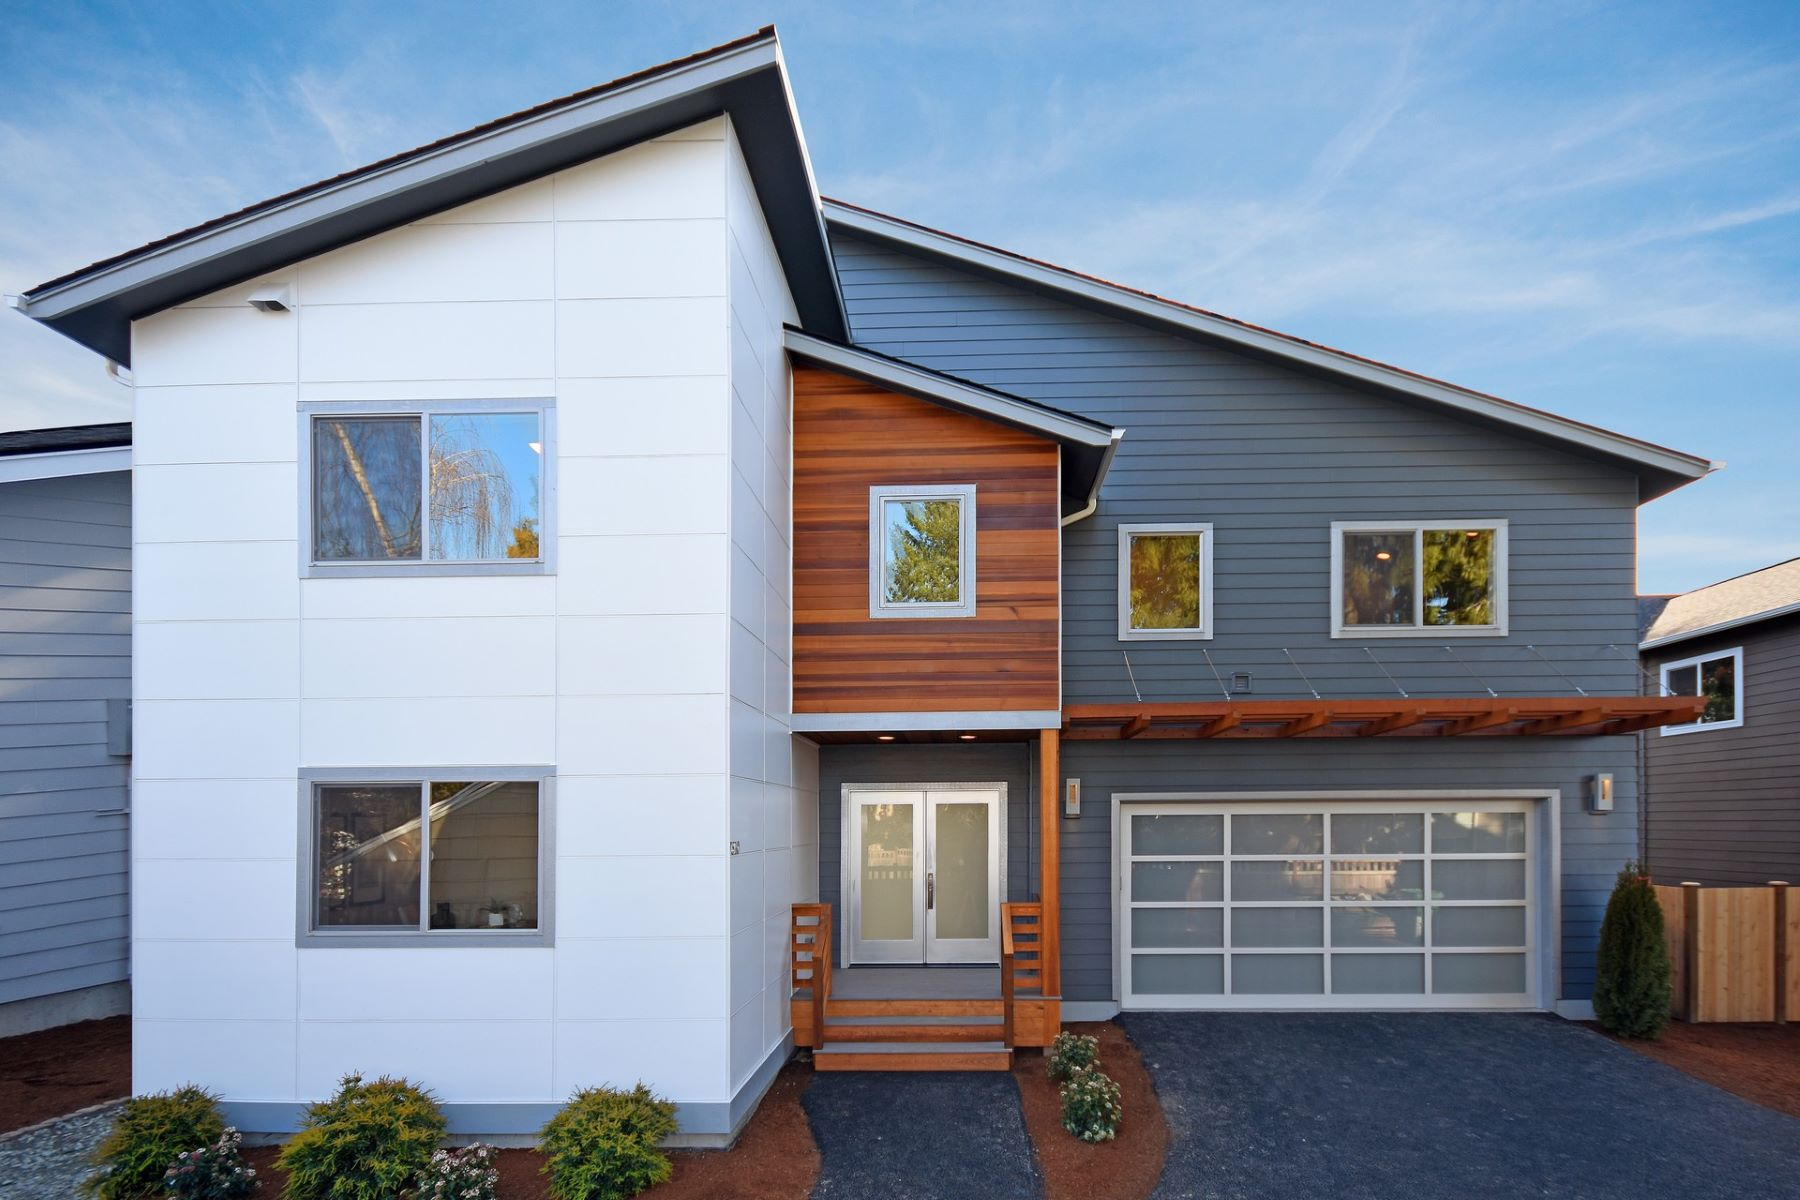 Single Family Home for Sale at Modern and Contemporary in Ravenna 7510 21st Ave NE Seattle, Washington 98115 United States